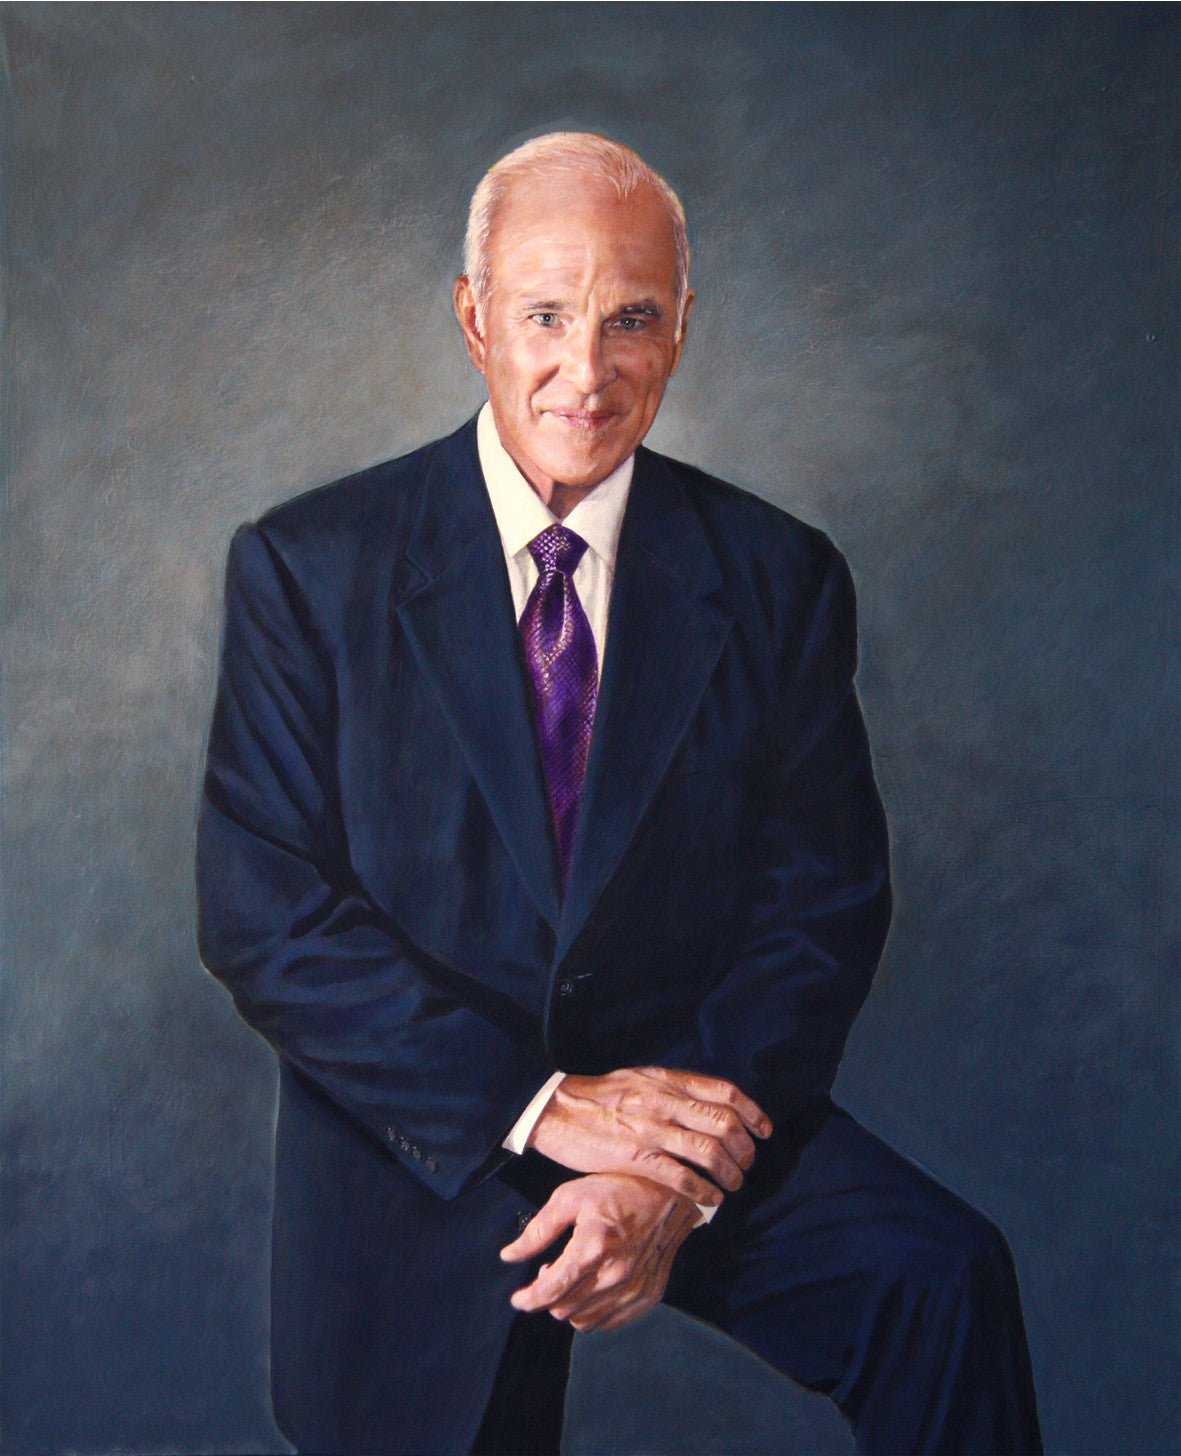 Gilbert T. Adams portrait by artist Trevor Goring